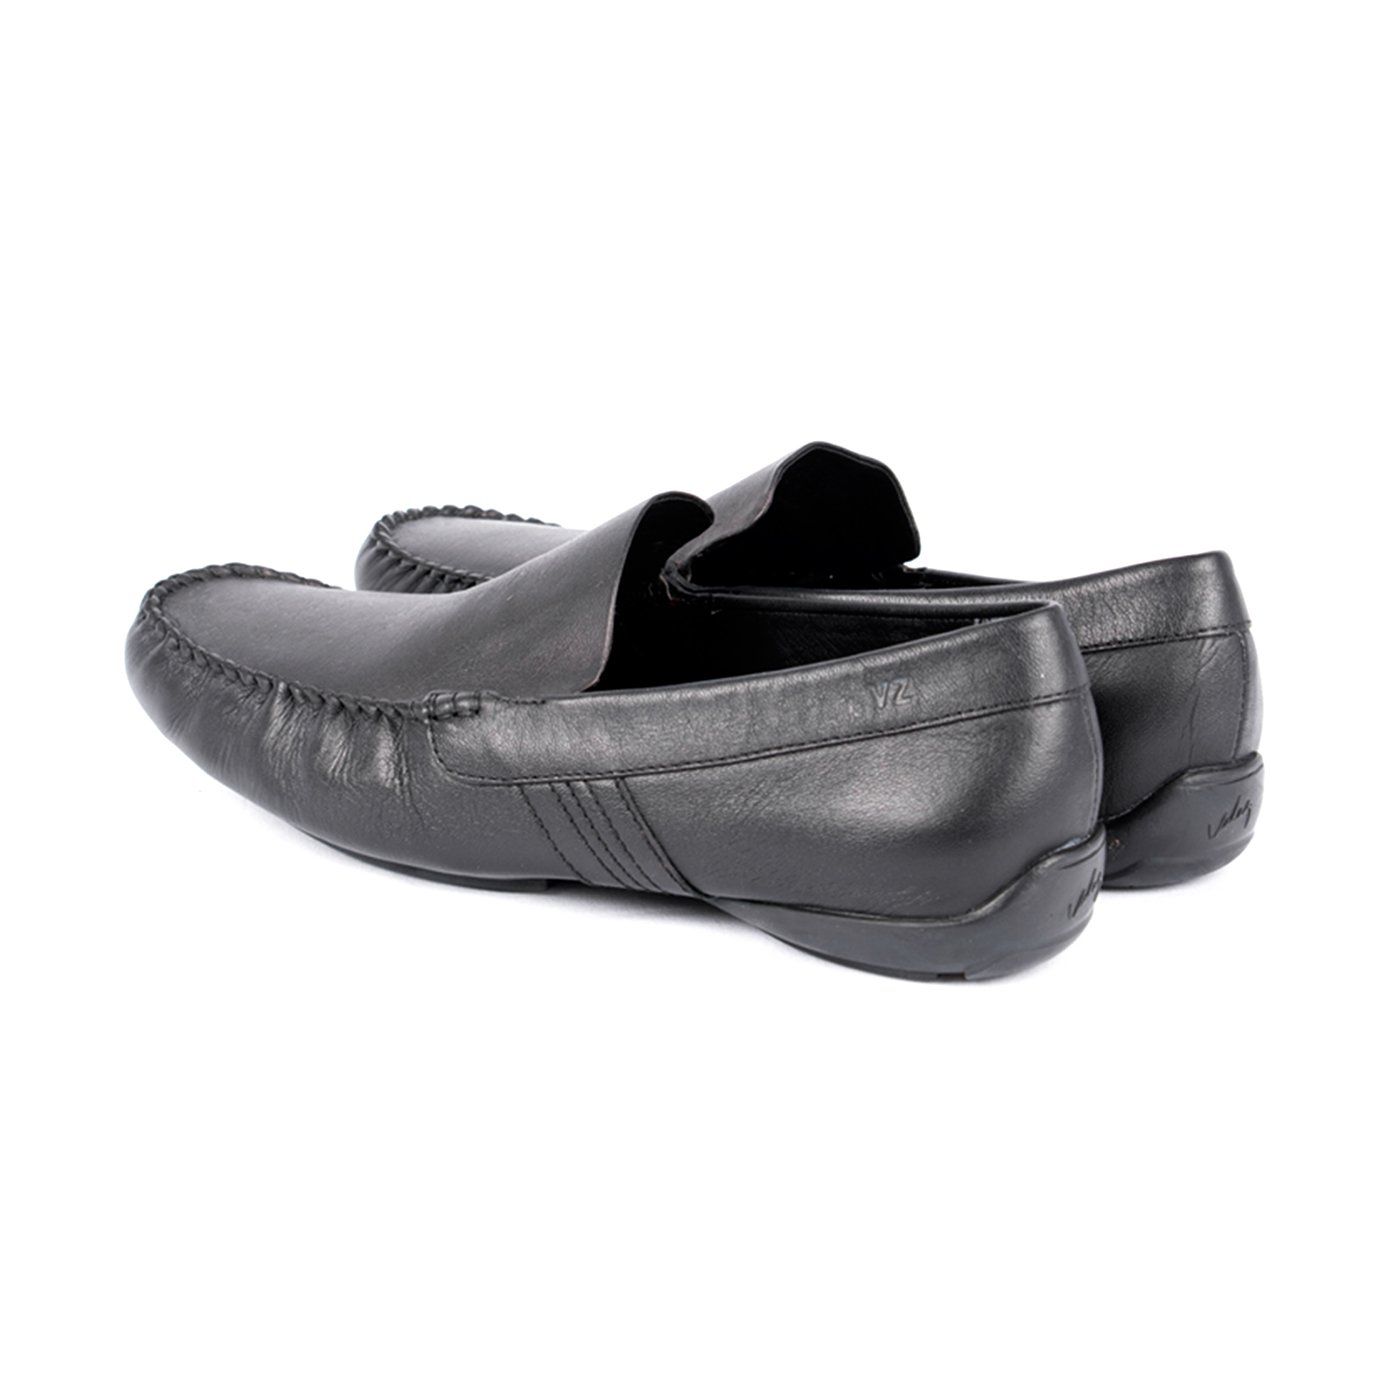 Amazon.com: VELEZ Mens Genuine Colombian Leather Moccasins Mocs | Mocasines de Cuero Colombiano para Hombres: Clothing